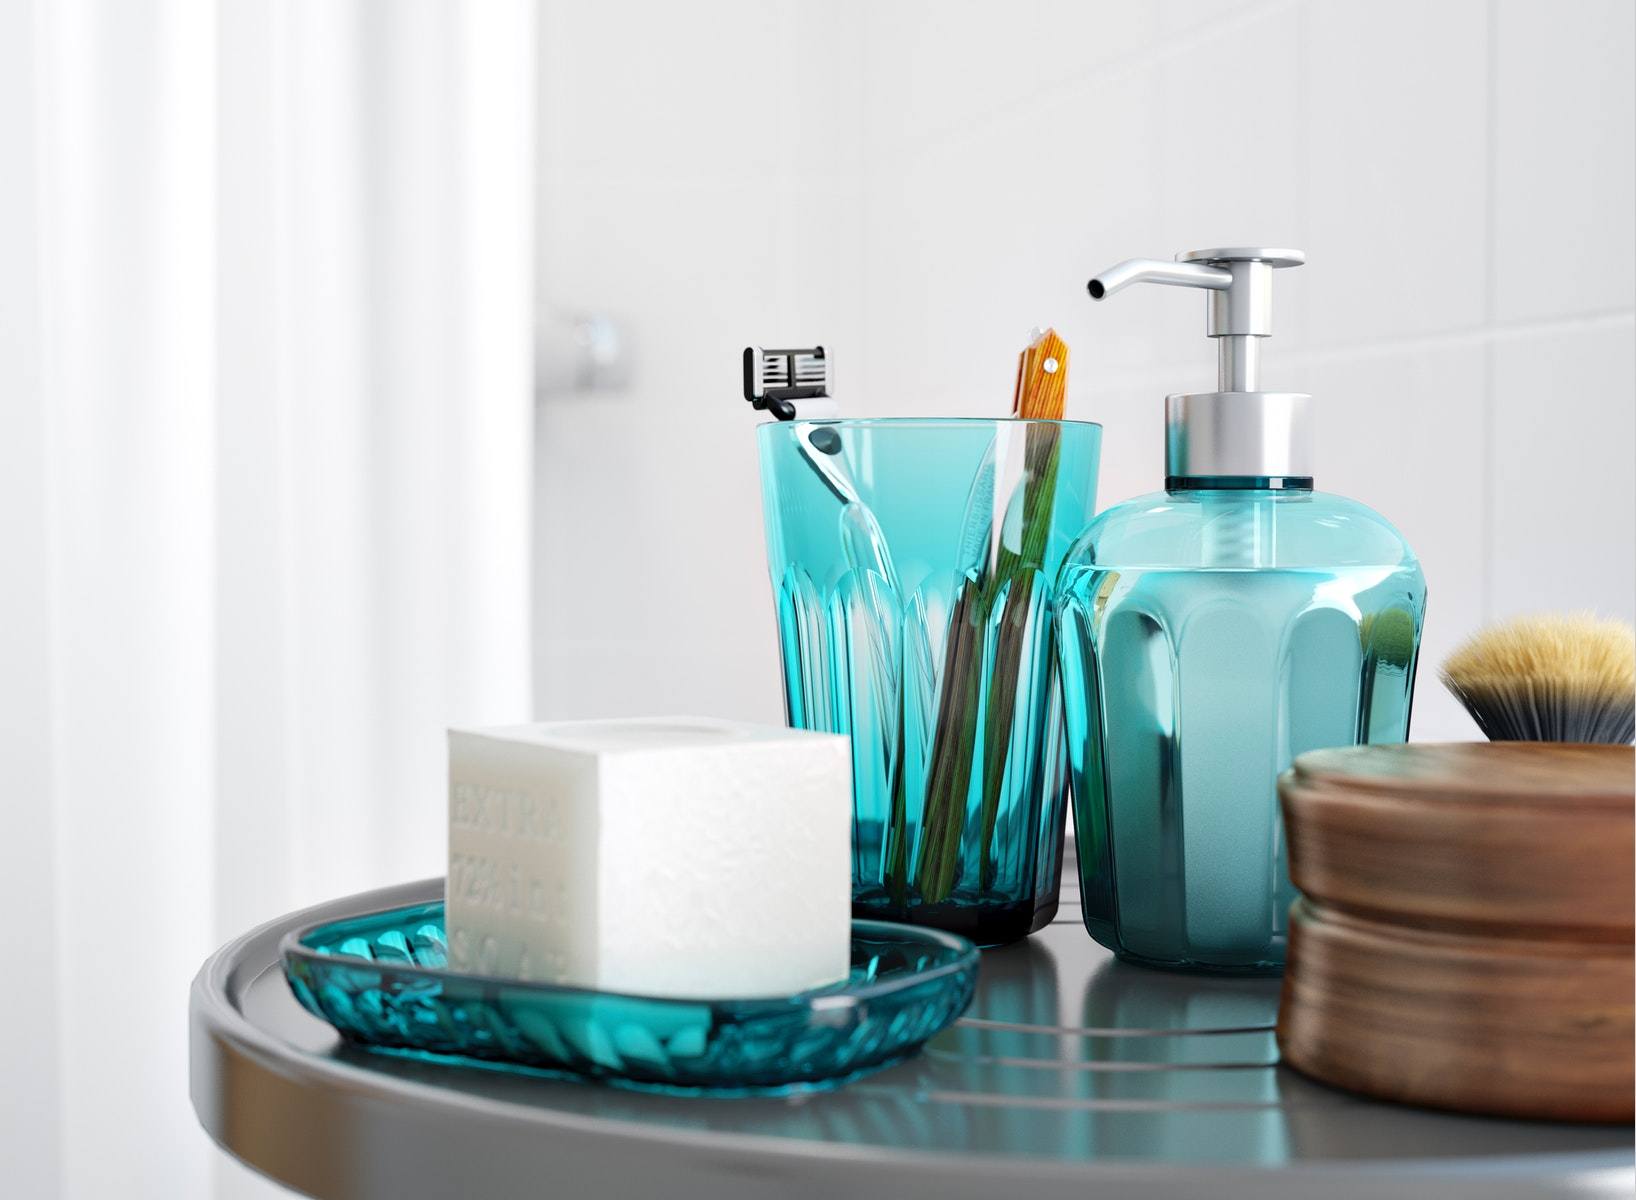 A black SVARTSJÖN hook complemented by a turquoise mug and soap dispenser from the same series.